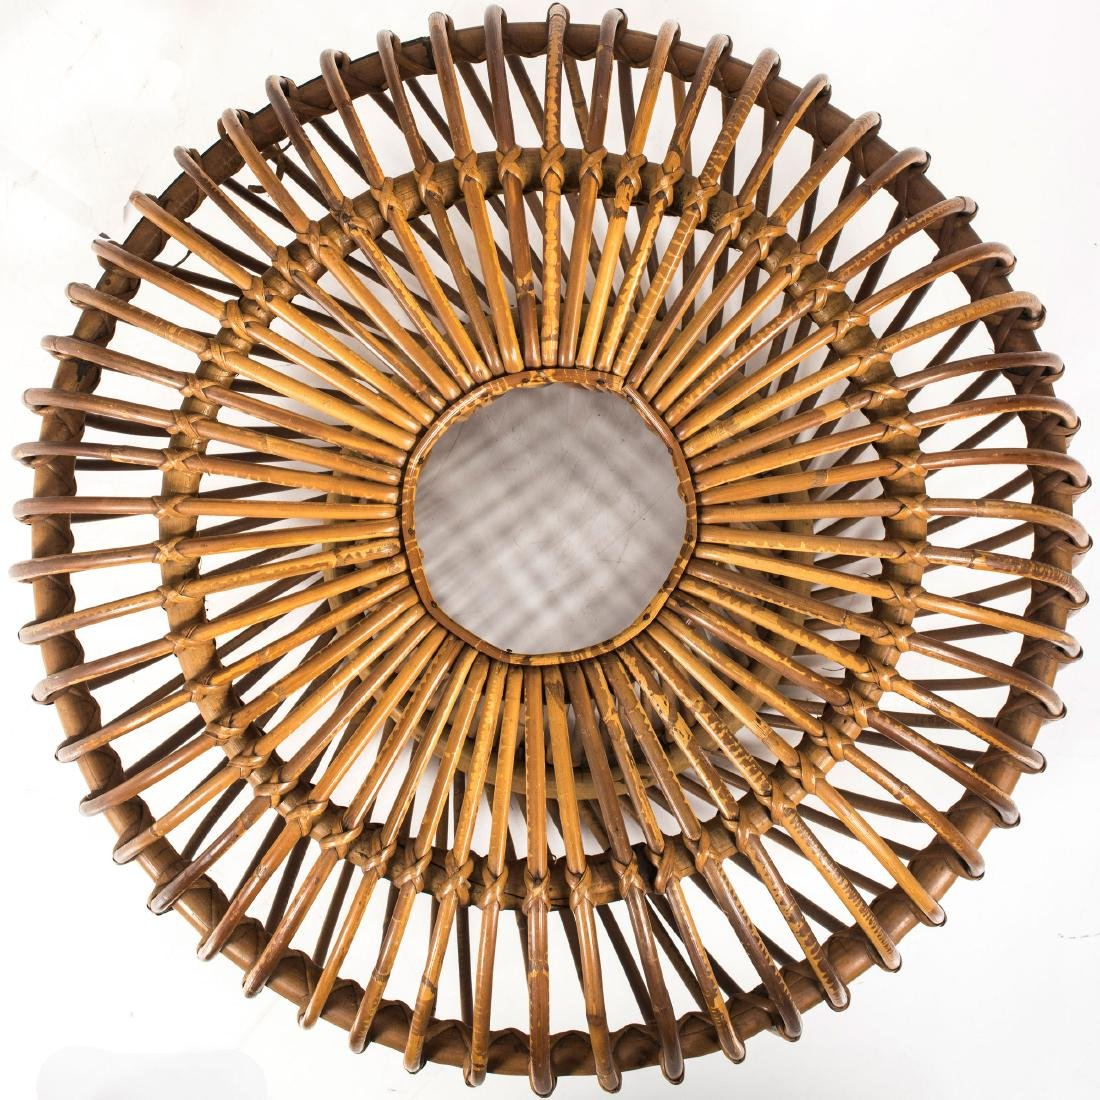 Wicker chair and ottoman, c. 1955 - 8